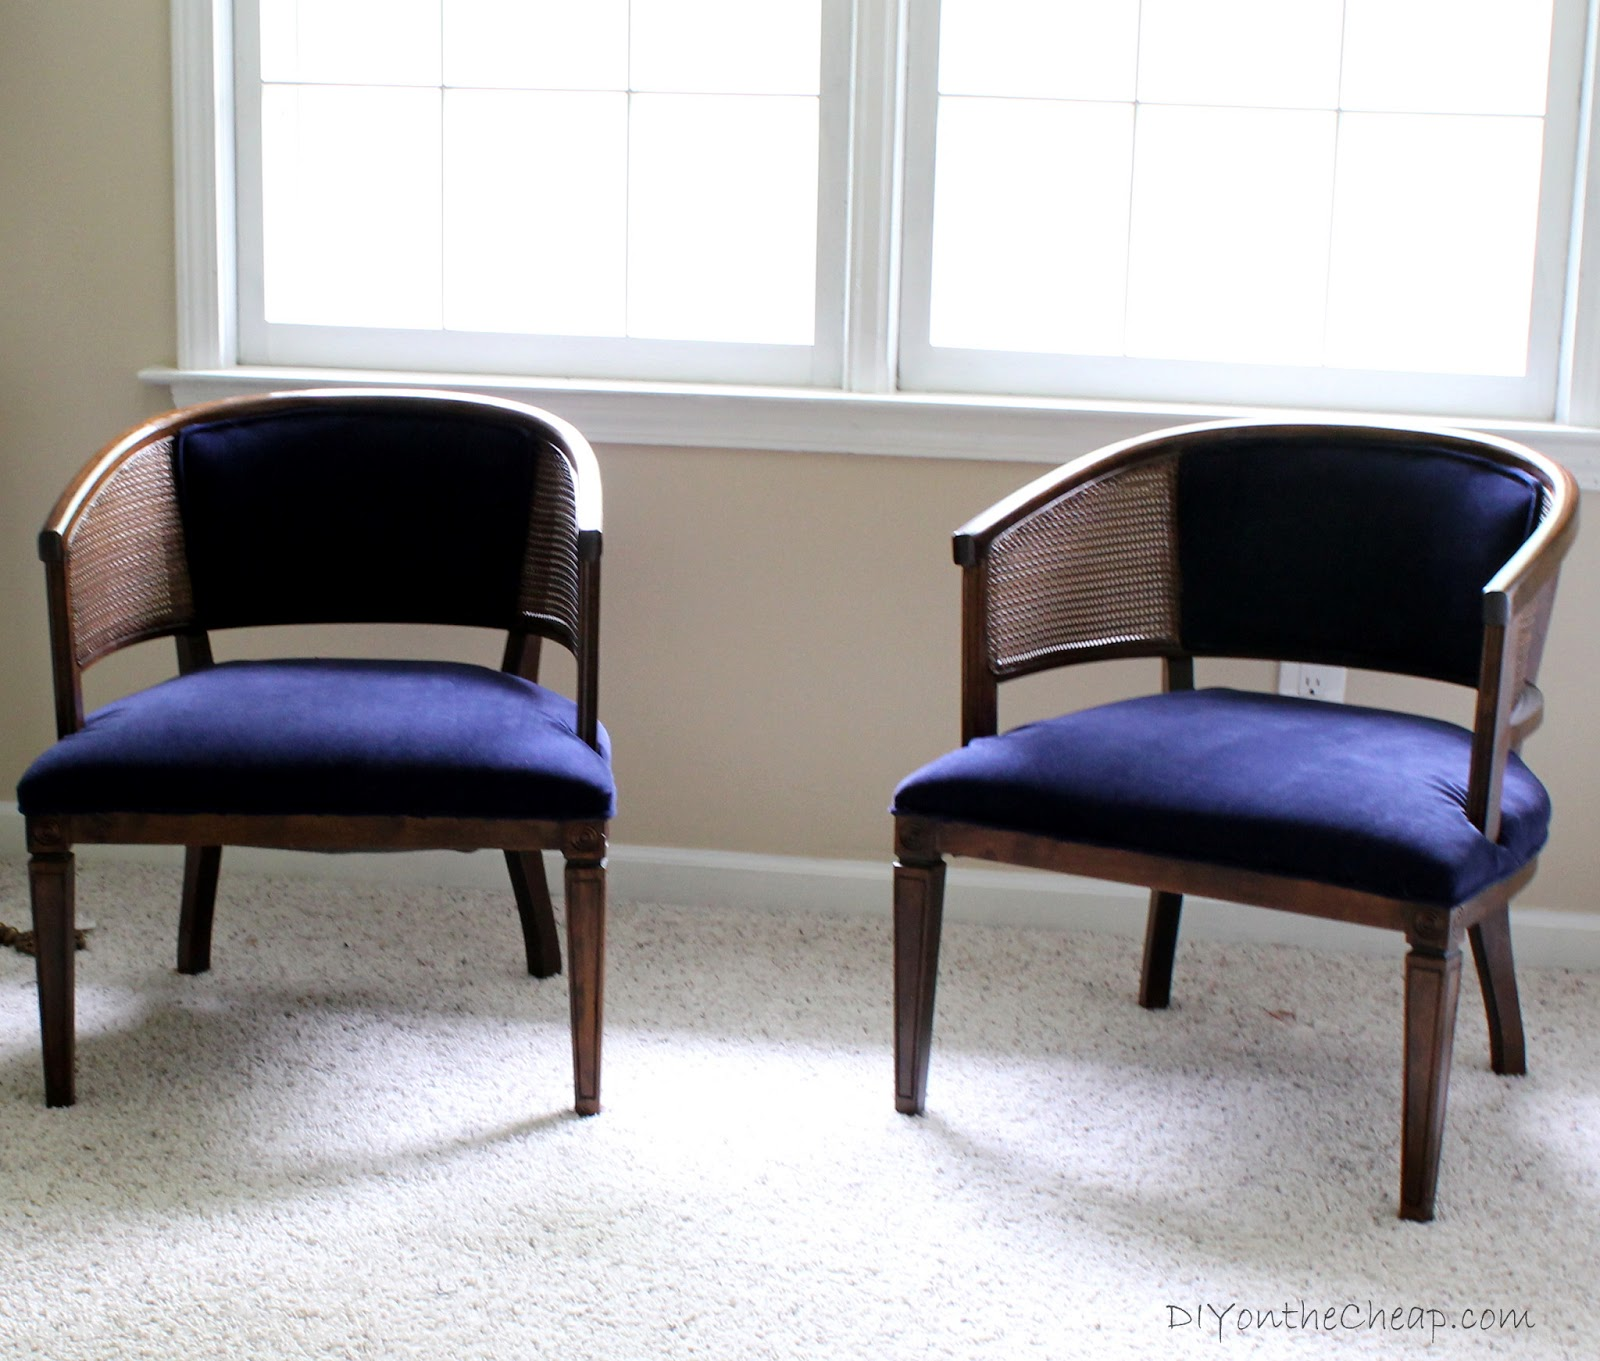 Where To Get Chairs Reupholstered Office Chair Arms Replacement Parts My Lazy Girl 39s Guide Reupholstering A Tutorial